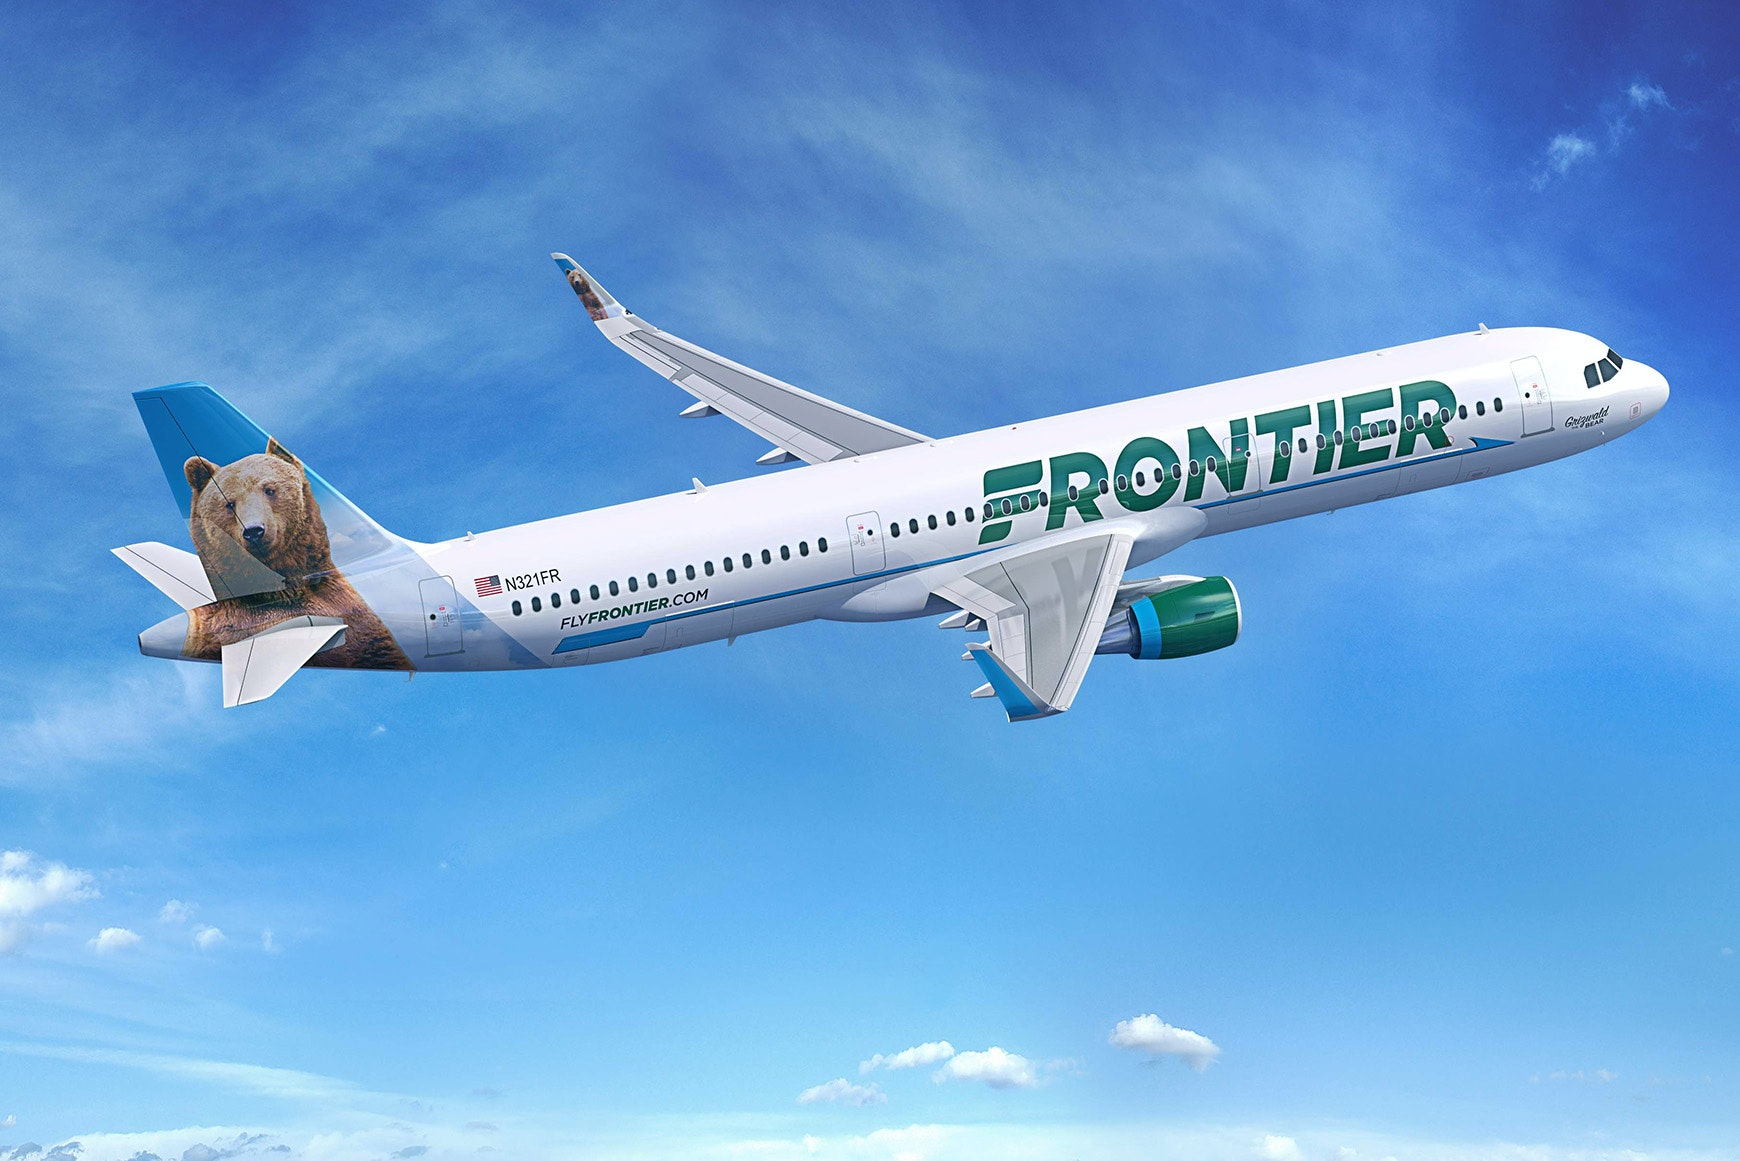 All of Frontier's aircraft have a different animal on their tails.